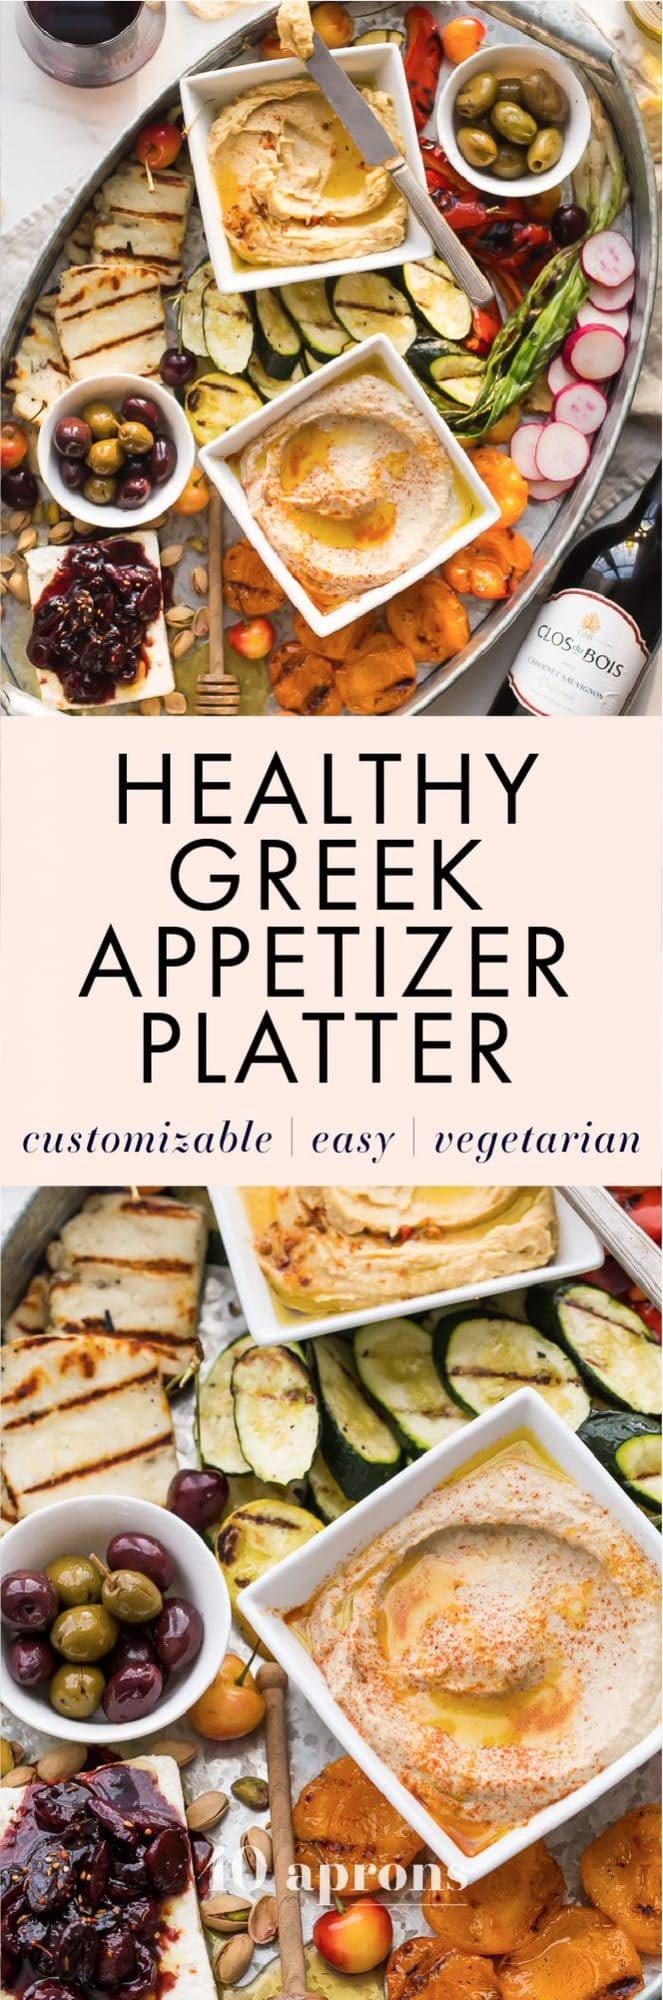 This healthy Greek appetizer platter is perfect for summer entertaining, loaded with healthy make-ahead appetizers you can customize to your own tastes. One of my favorite healthy appetizers! My healthy Greek appetizer platter includes Mediterranean dips and spreads, grilled veggies, fruits, and halloumi, fresh fruit, nuts, and feta topped with a rich, fruity reduction. If you're doing some summer entertaining soon or looking for great healthy appetizers, this healthy Greek appetizer platter is just the thing you need!